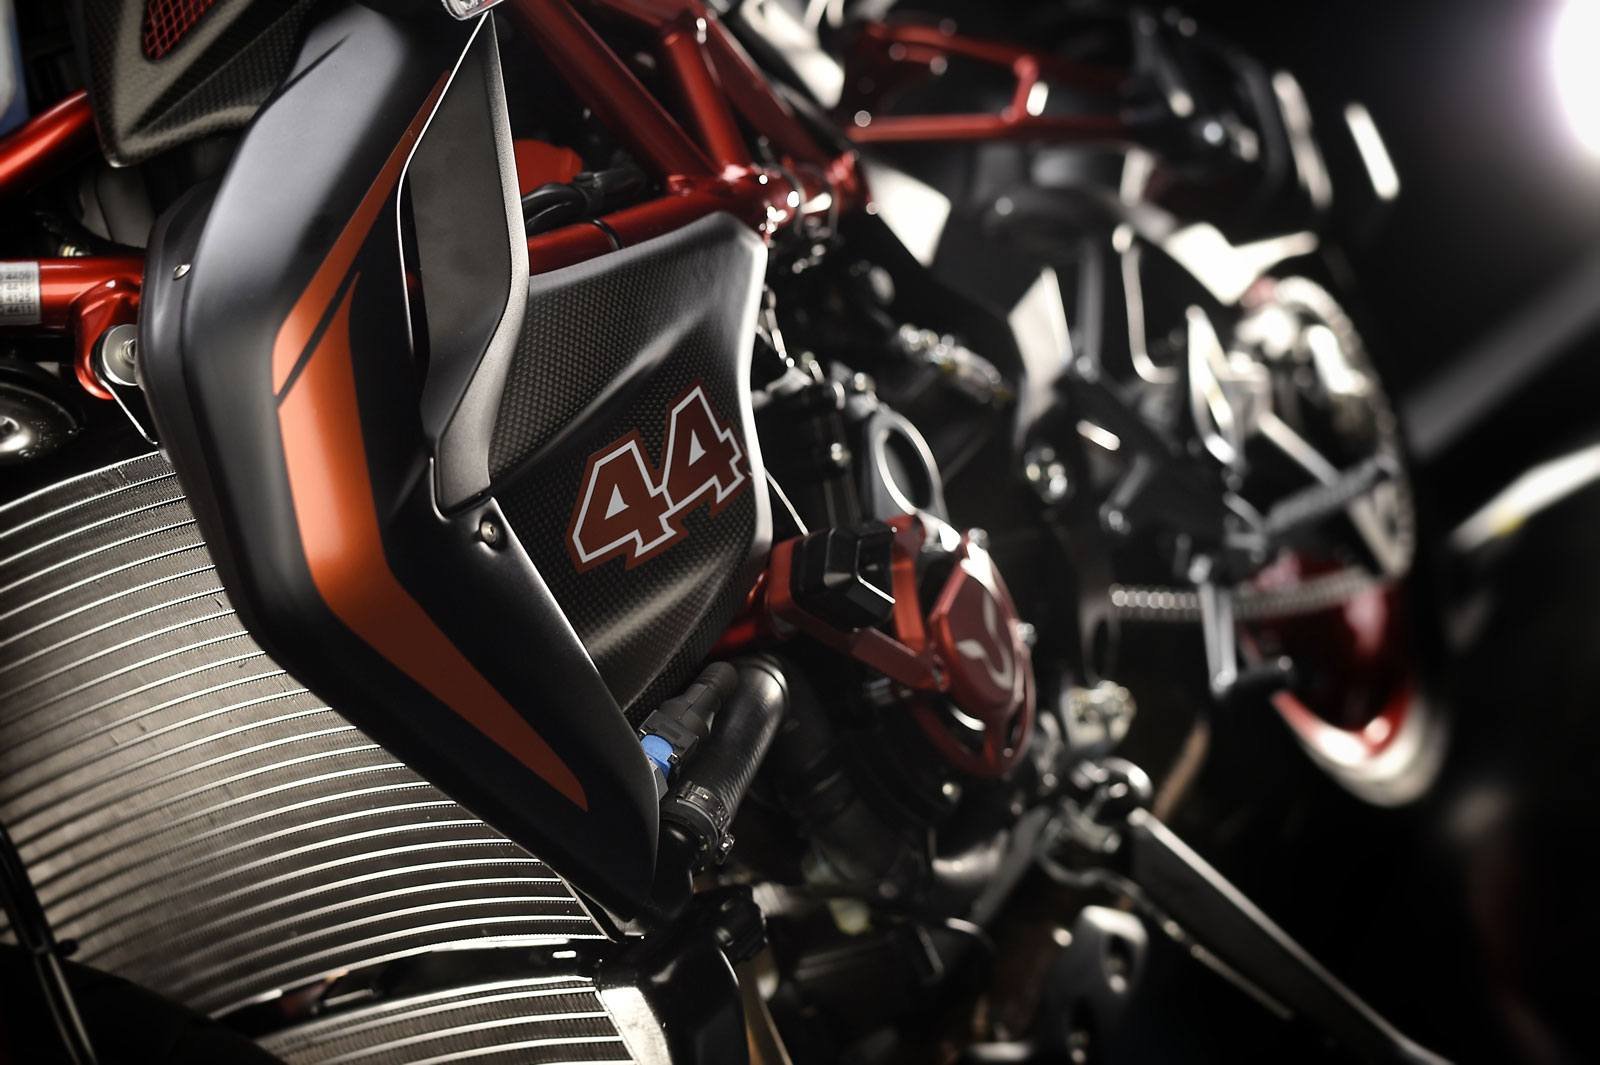 new 2016 mv agusta brutale dragster 800 rr lh44 motorcycles in